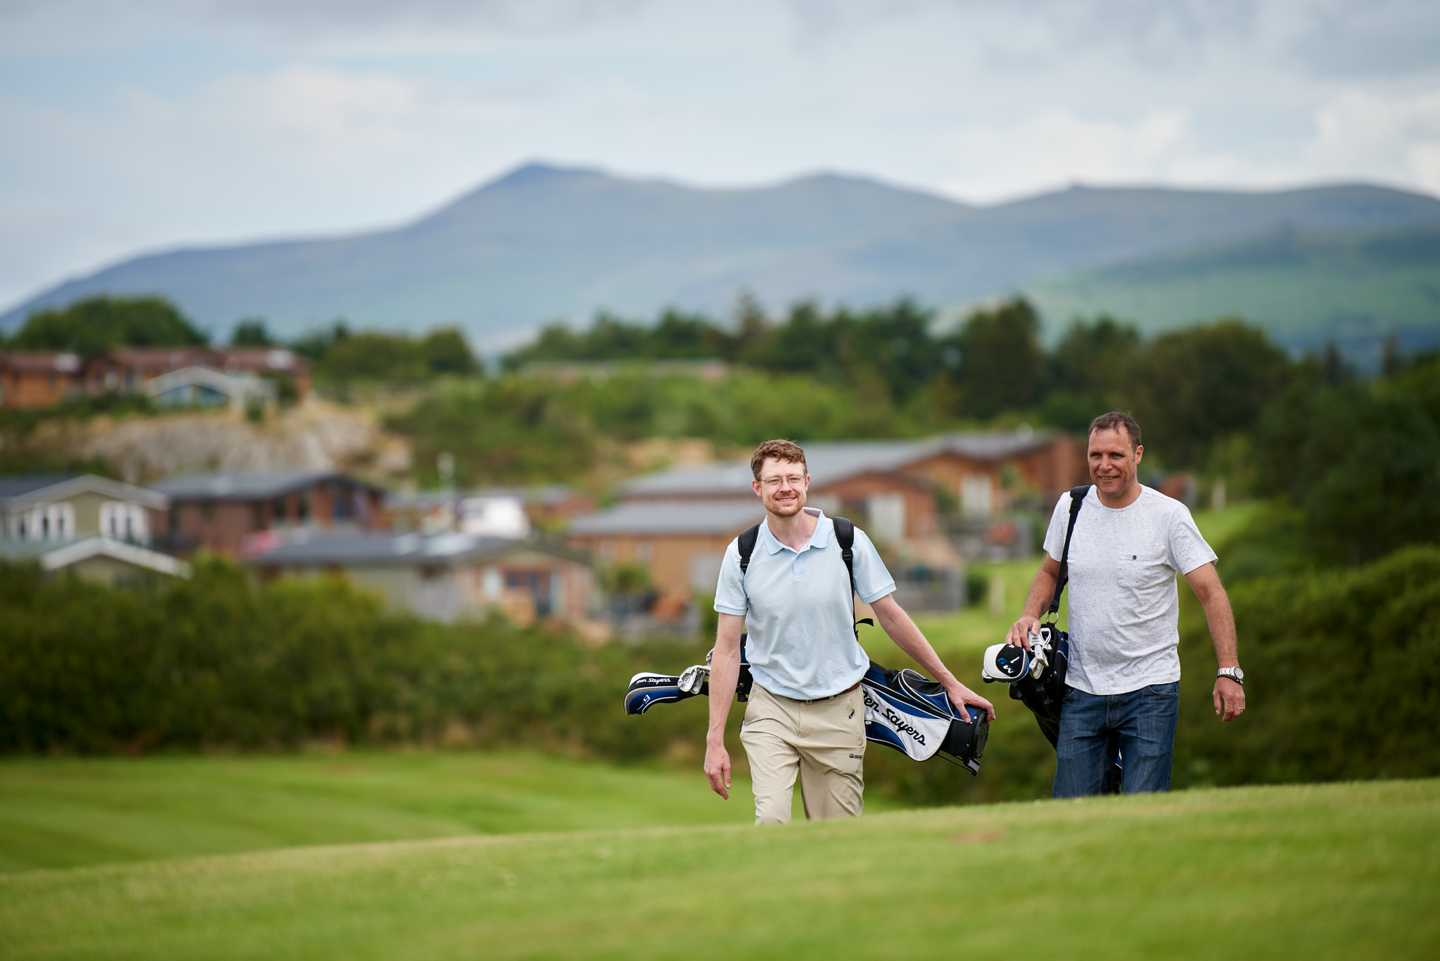 2 men carrying their golf bags along the 9-hole golf course with mountain in the background